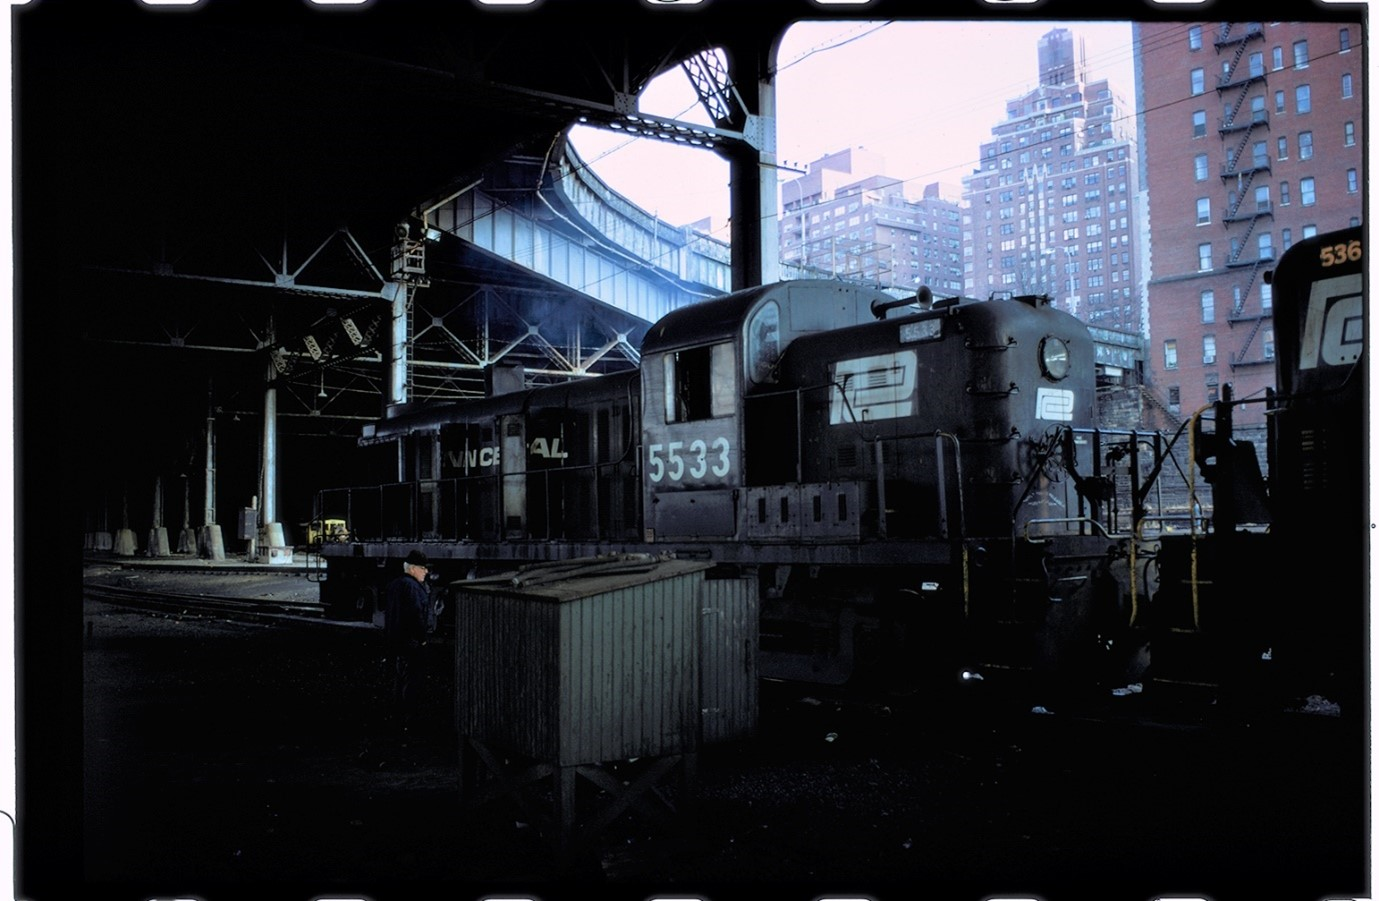 Colour photograph taken by Ian Logan in the 1970s of a Penn Central diesel locomotive in the West 60th Street yard in Manhattan.